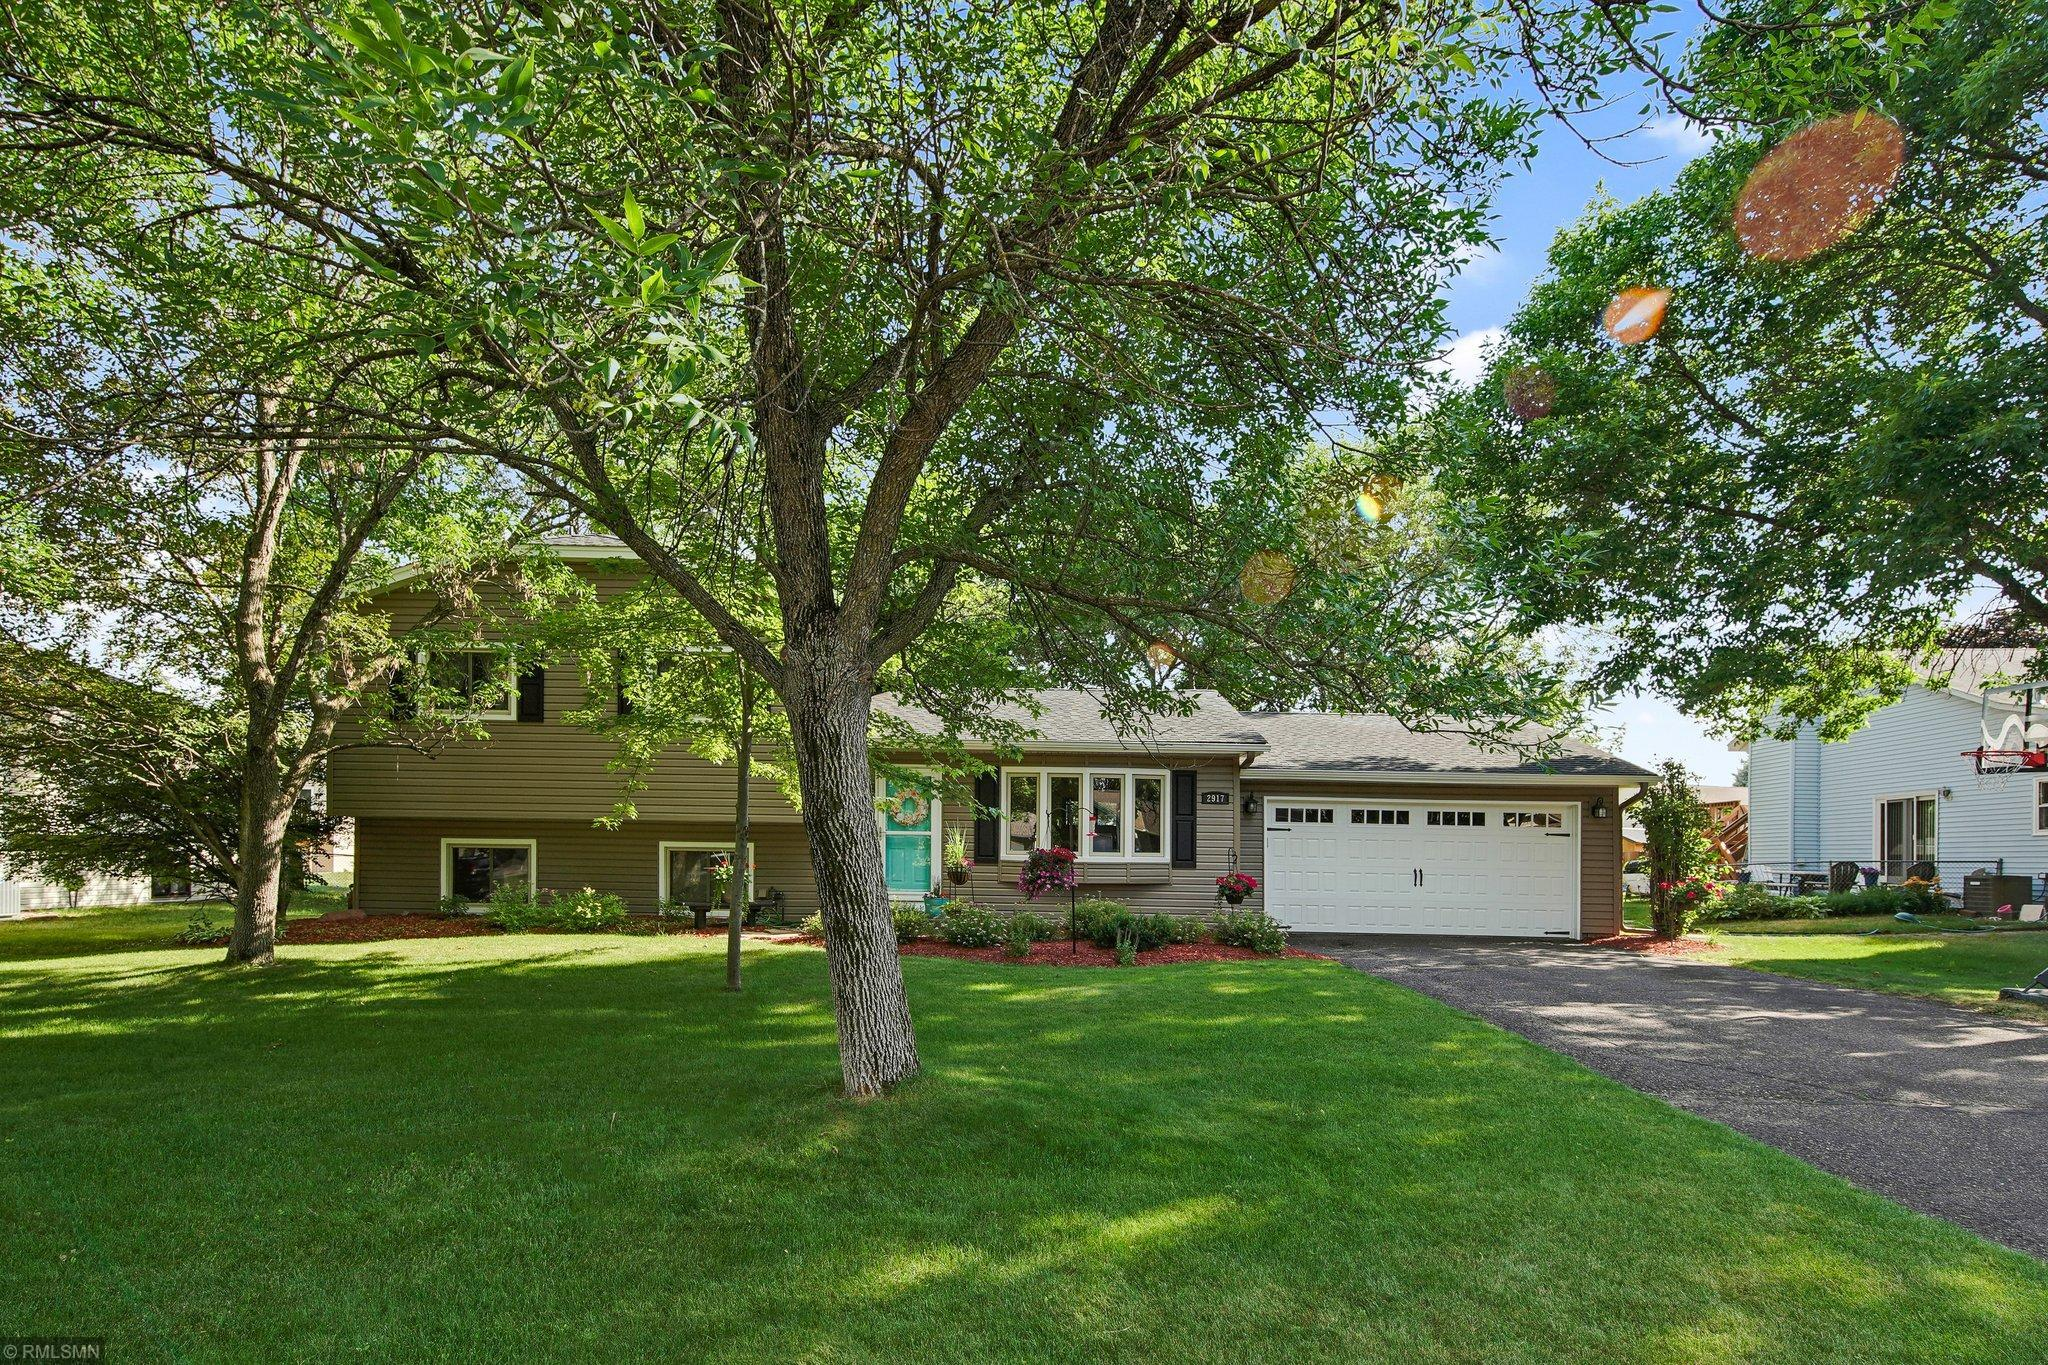 2917 98th N Property Photo - Brooklyn Park, MN real estate listing